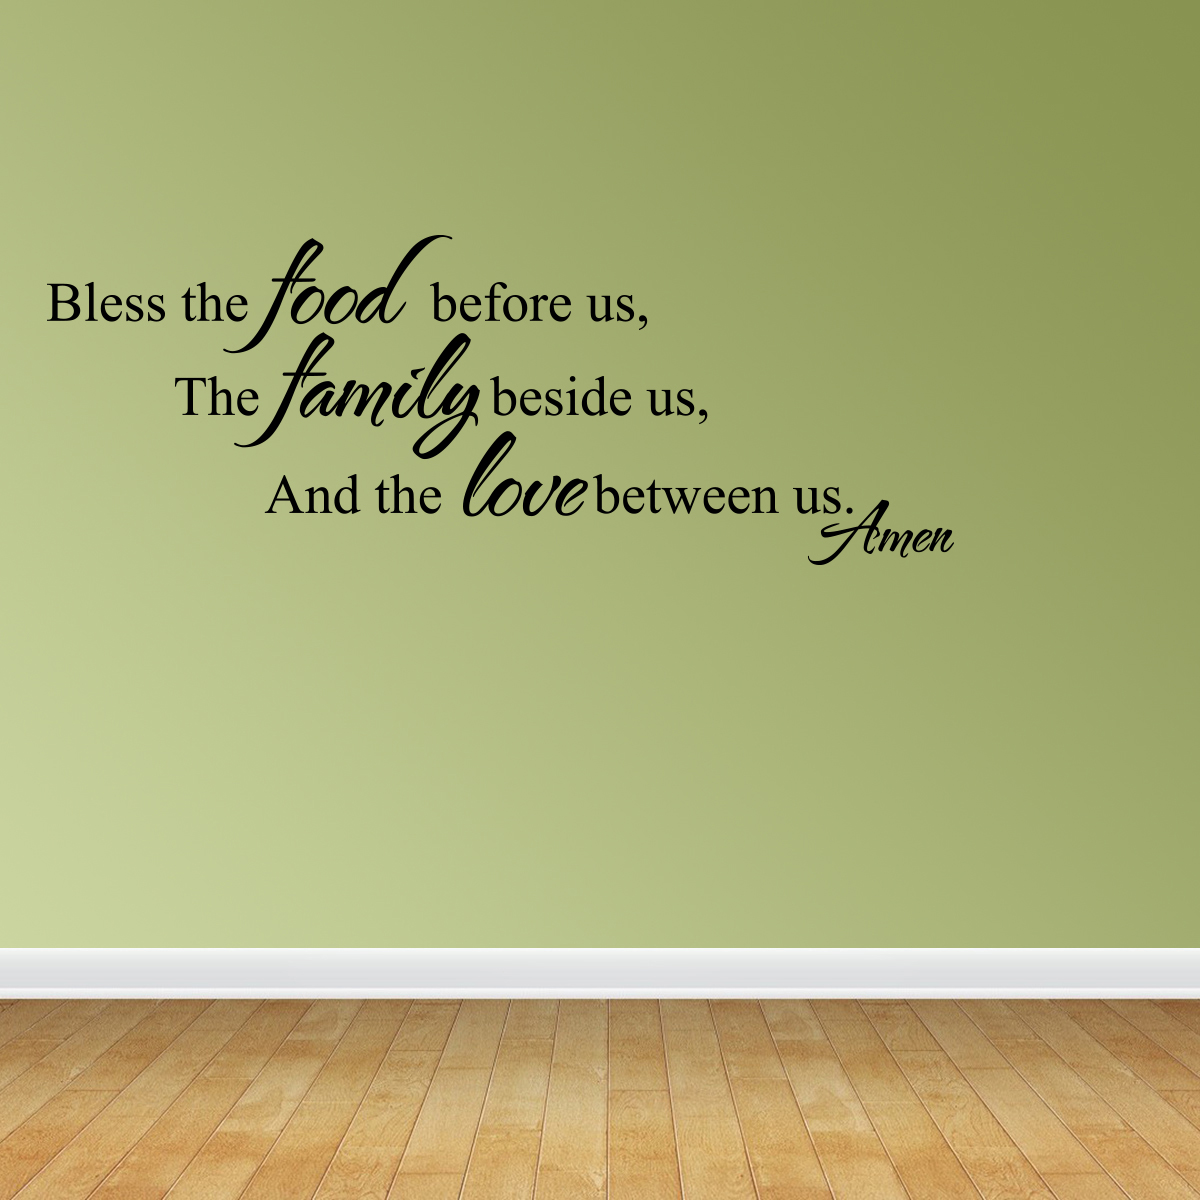 Wall Decal Quote Bless The Food Before Us The Family Beside Us And The JR920